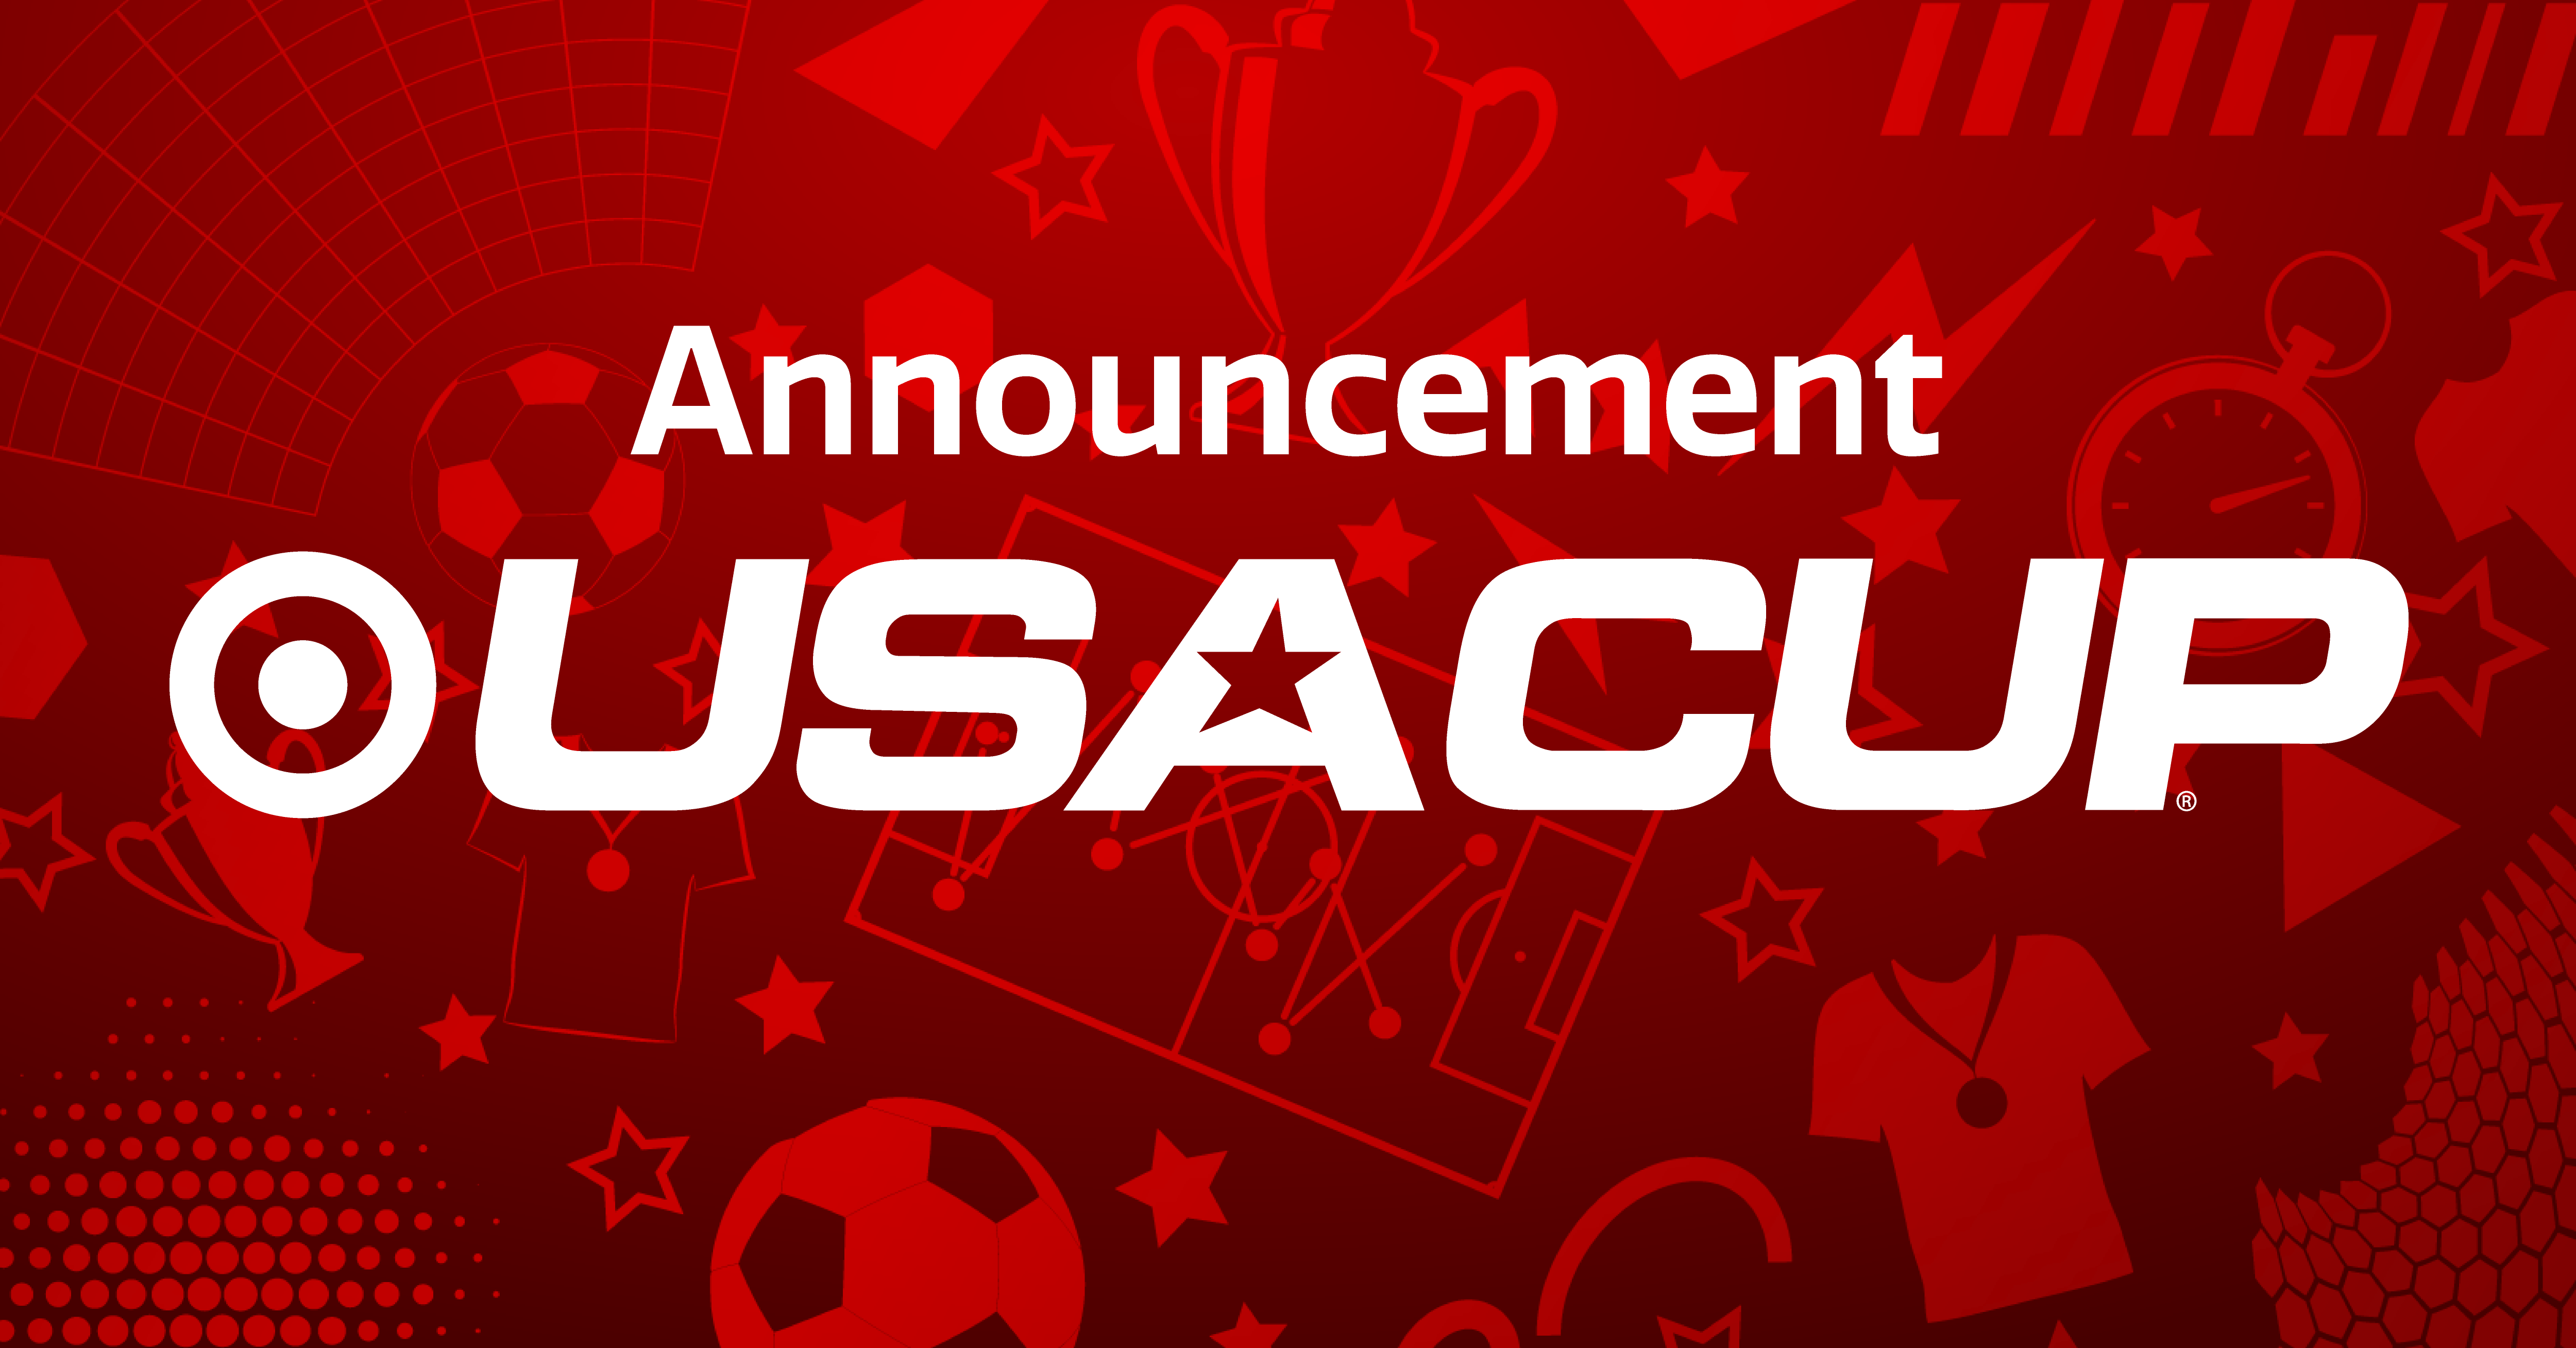 USA CUP Announcement